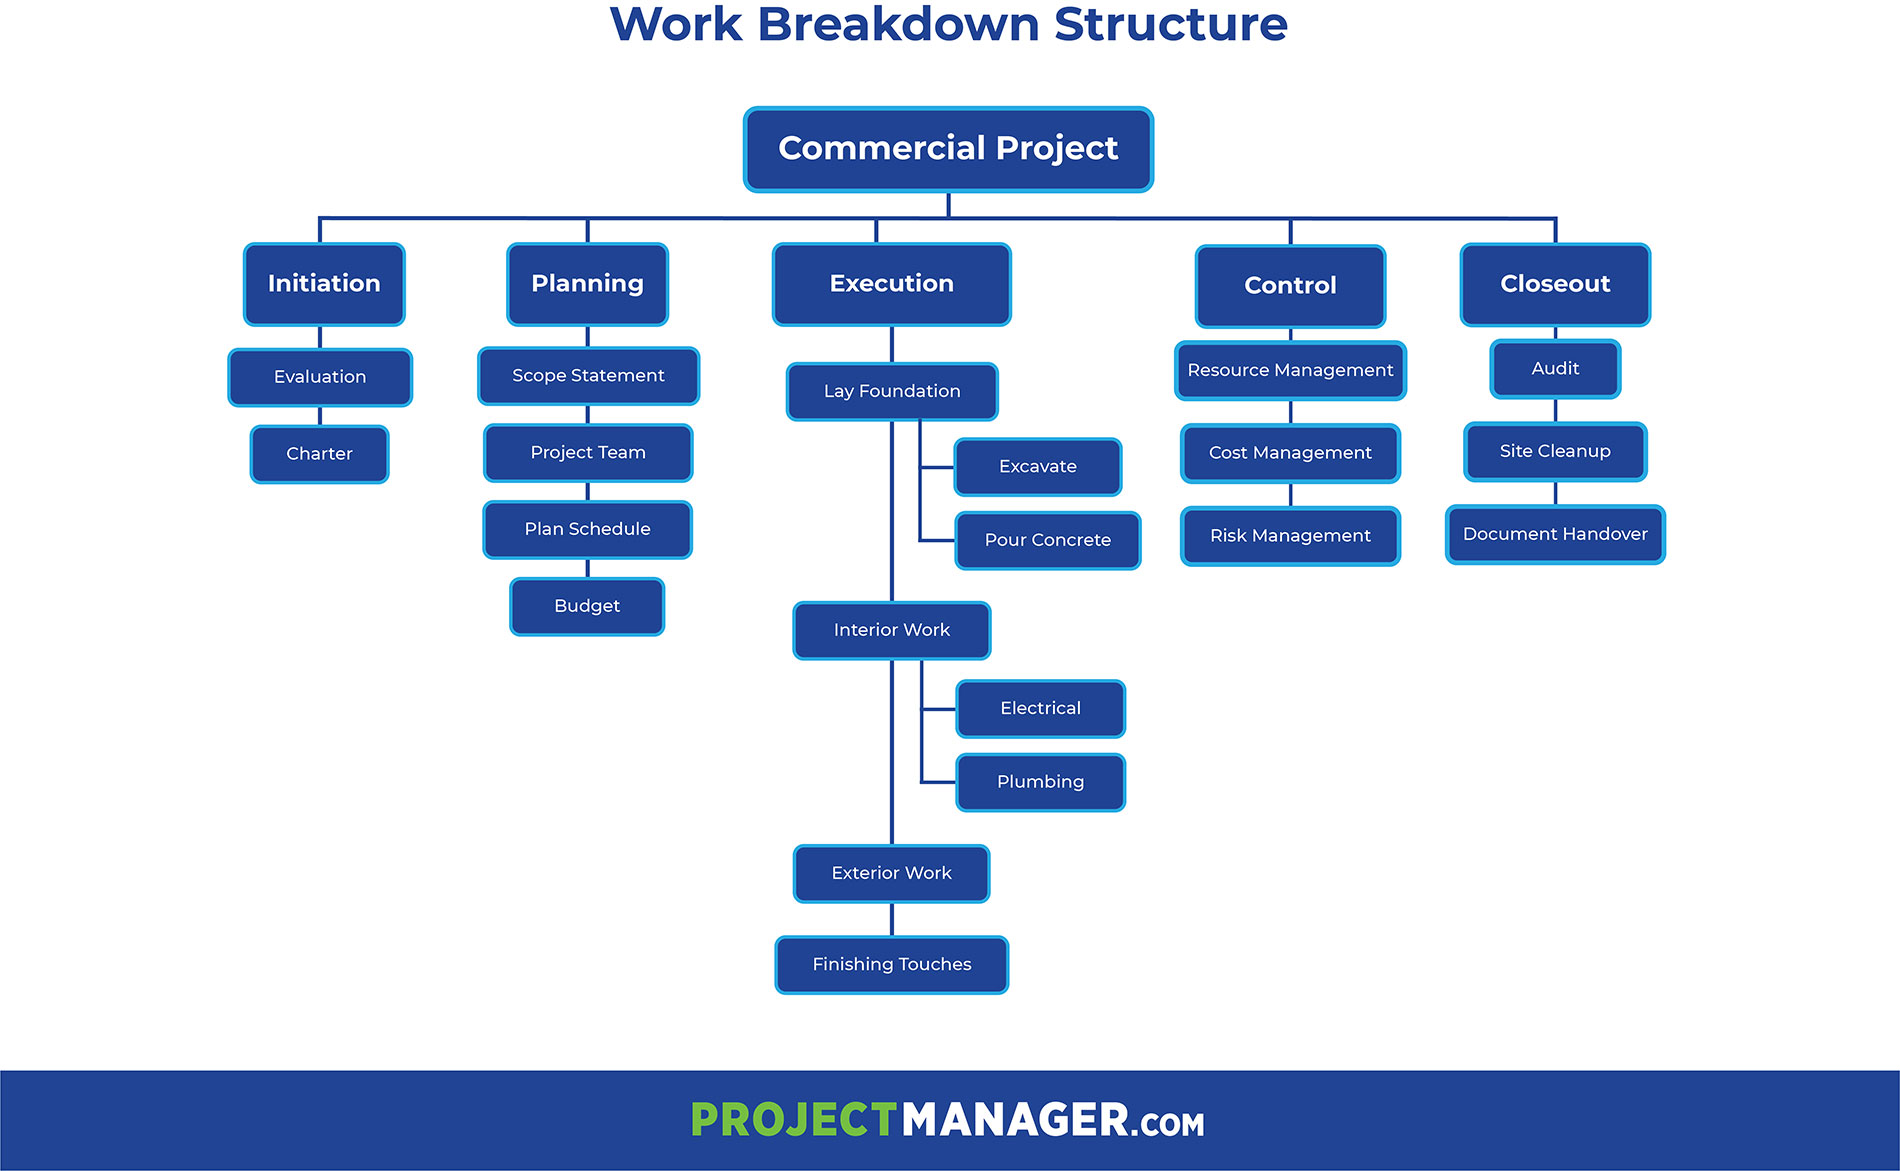 An infographic displaying a work breakdown structure for a commercial project. The main deliverable is broken down into five tasks, which are further broken down into subtasks.